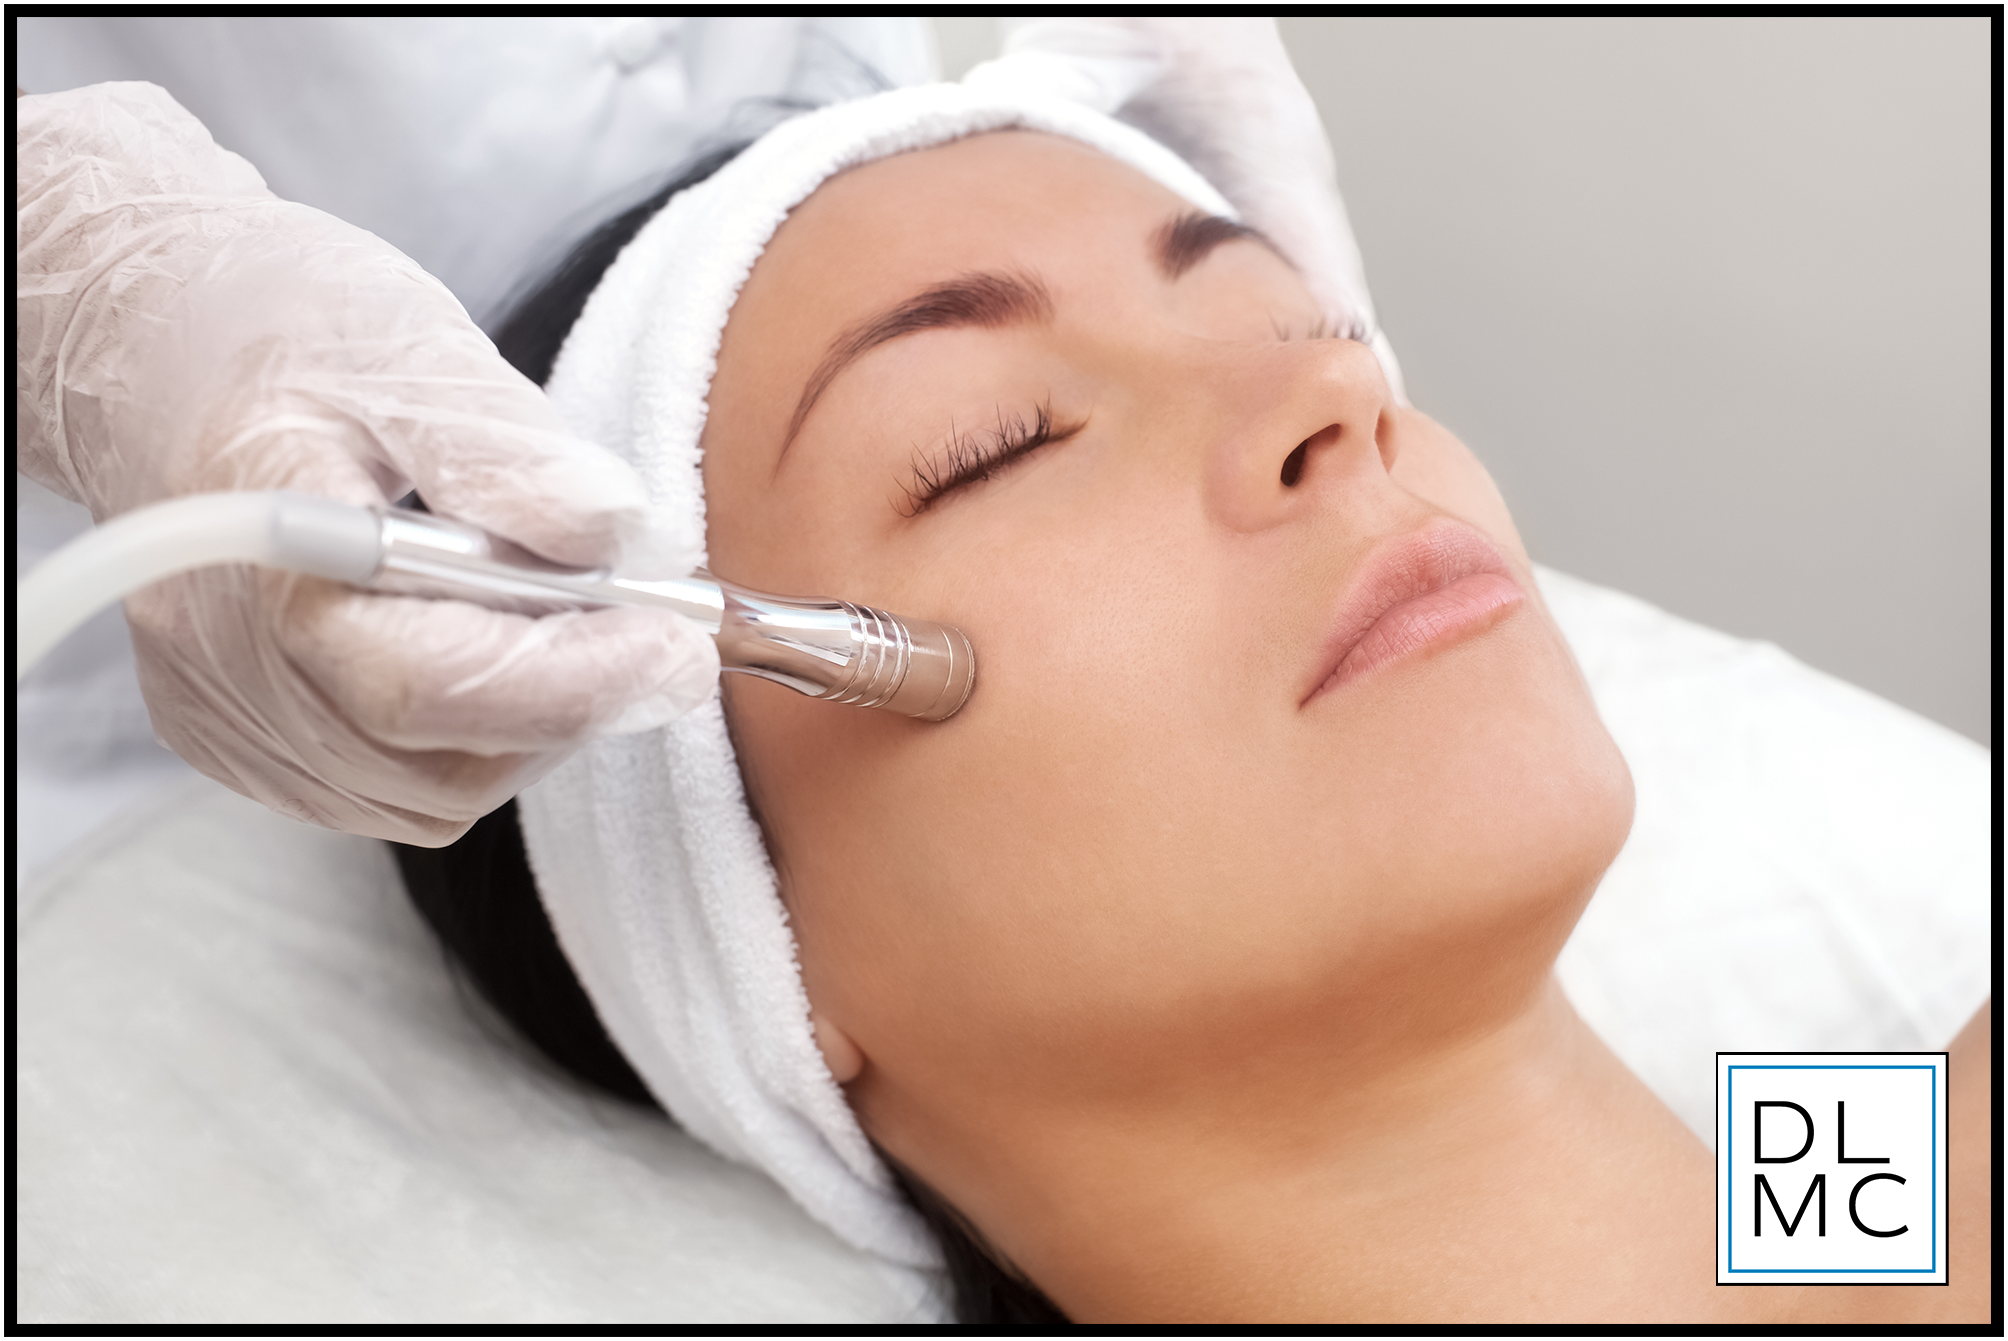 Microdermabrasion - Microdermabrasion is a minimally invasive procedure used to renew overall skin tone and texture. This is a painless procedure that uses a special diamond tip applicator with an abrasive surface to gently sand away the thick outer layer of the skin. You can expect for the treated area to be a little pink for a few hours after your treatment.What problems can it help with?It can improve the appearance of sun damage, wrinkles and fine lines, age spots, acne scarring and melasma.